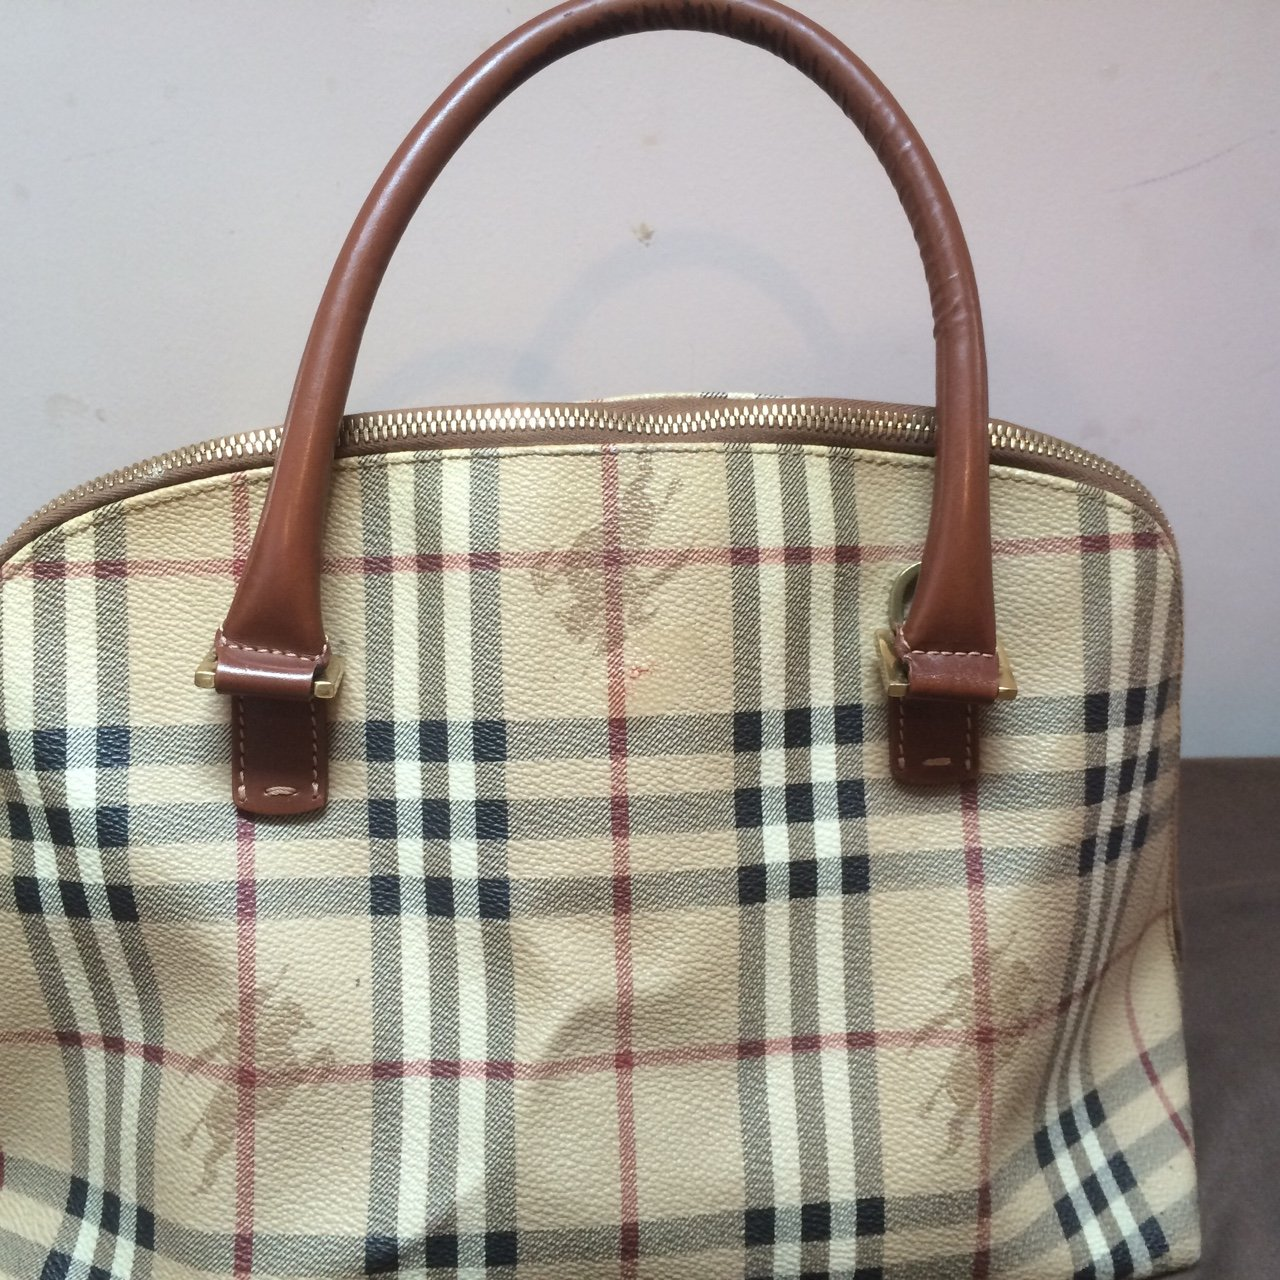 100% real Burberry handbag. Few marks as seen in the and in - Depop e543eafbcd7f4